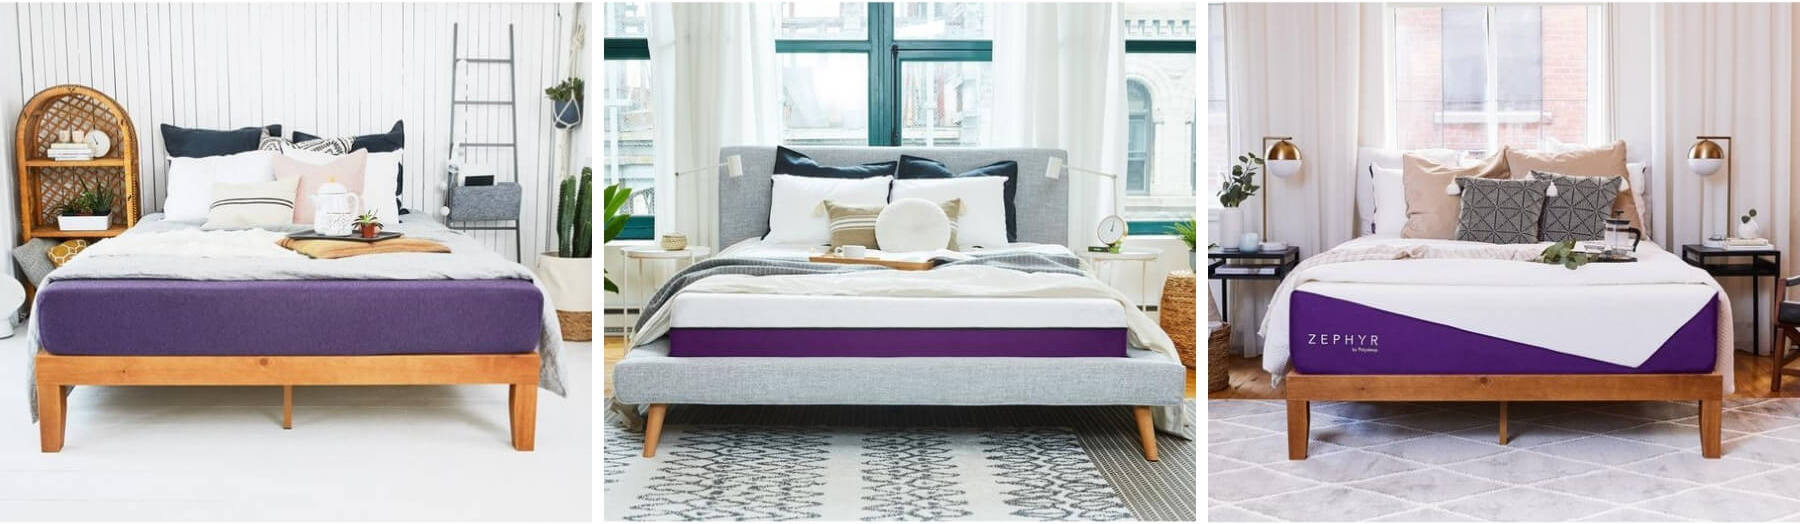 The Origin, Polysleep and Zephyr mattresses side-by-side